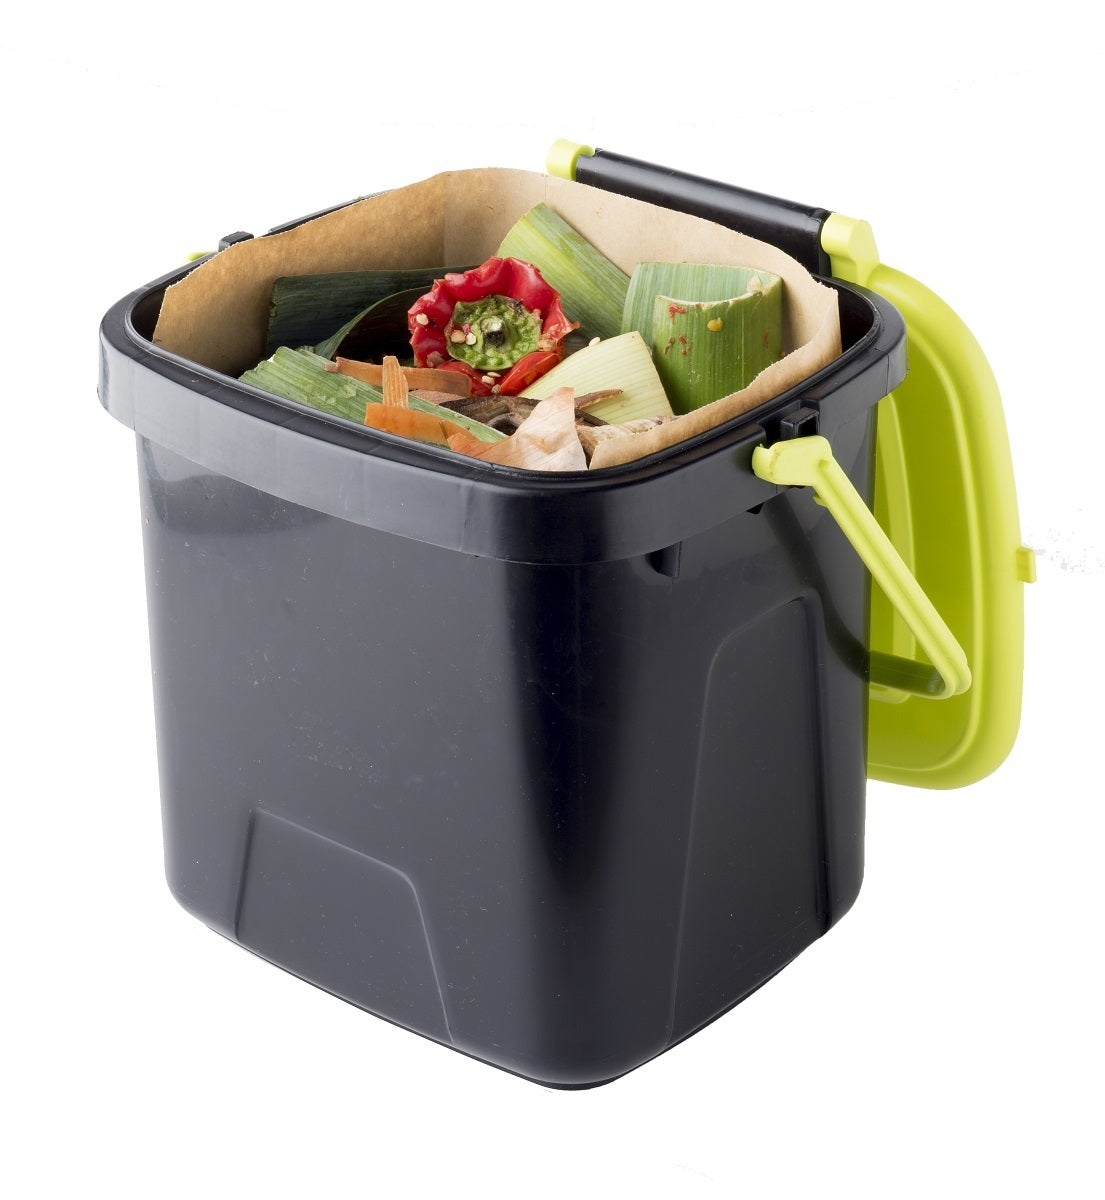 Maze 7lt Compost Caddy with Biodegradable Bags x 15